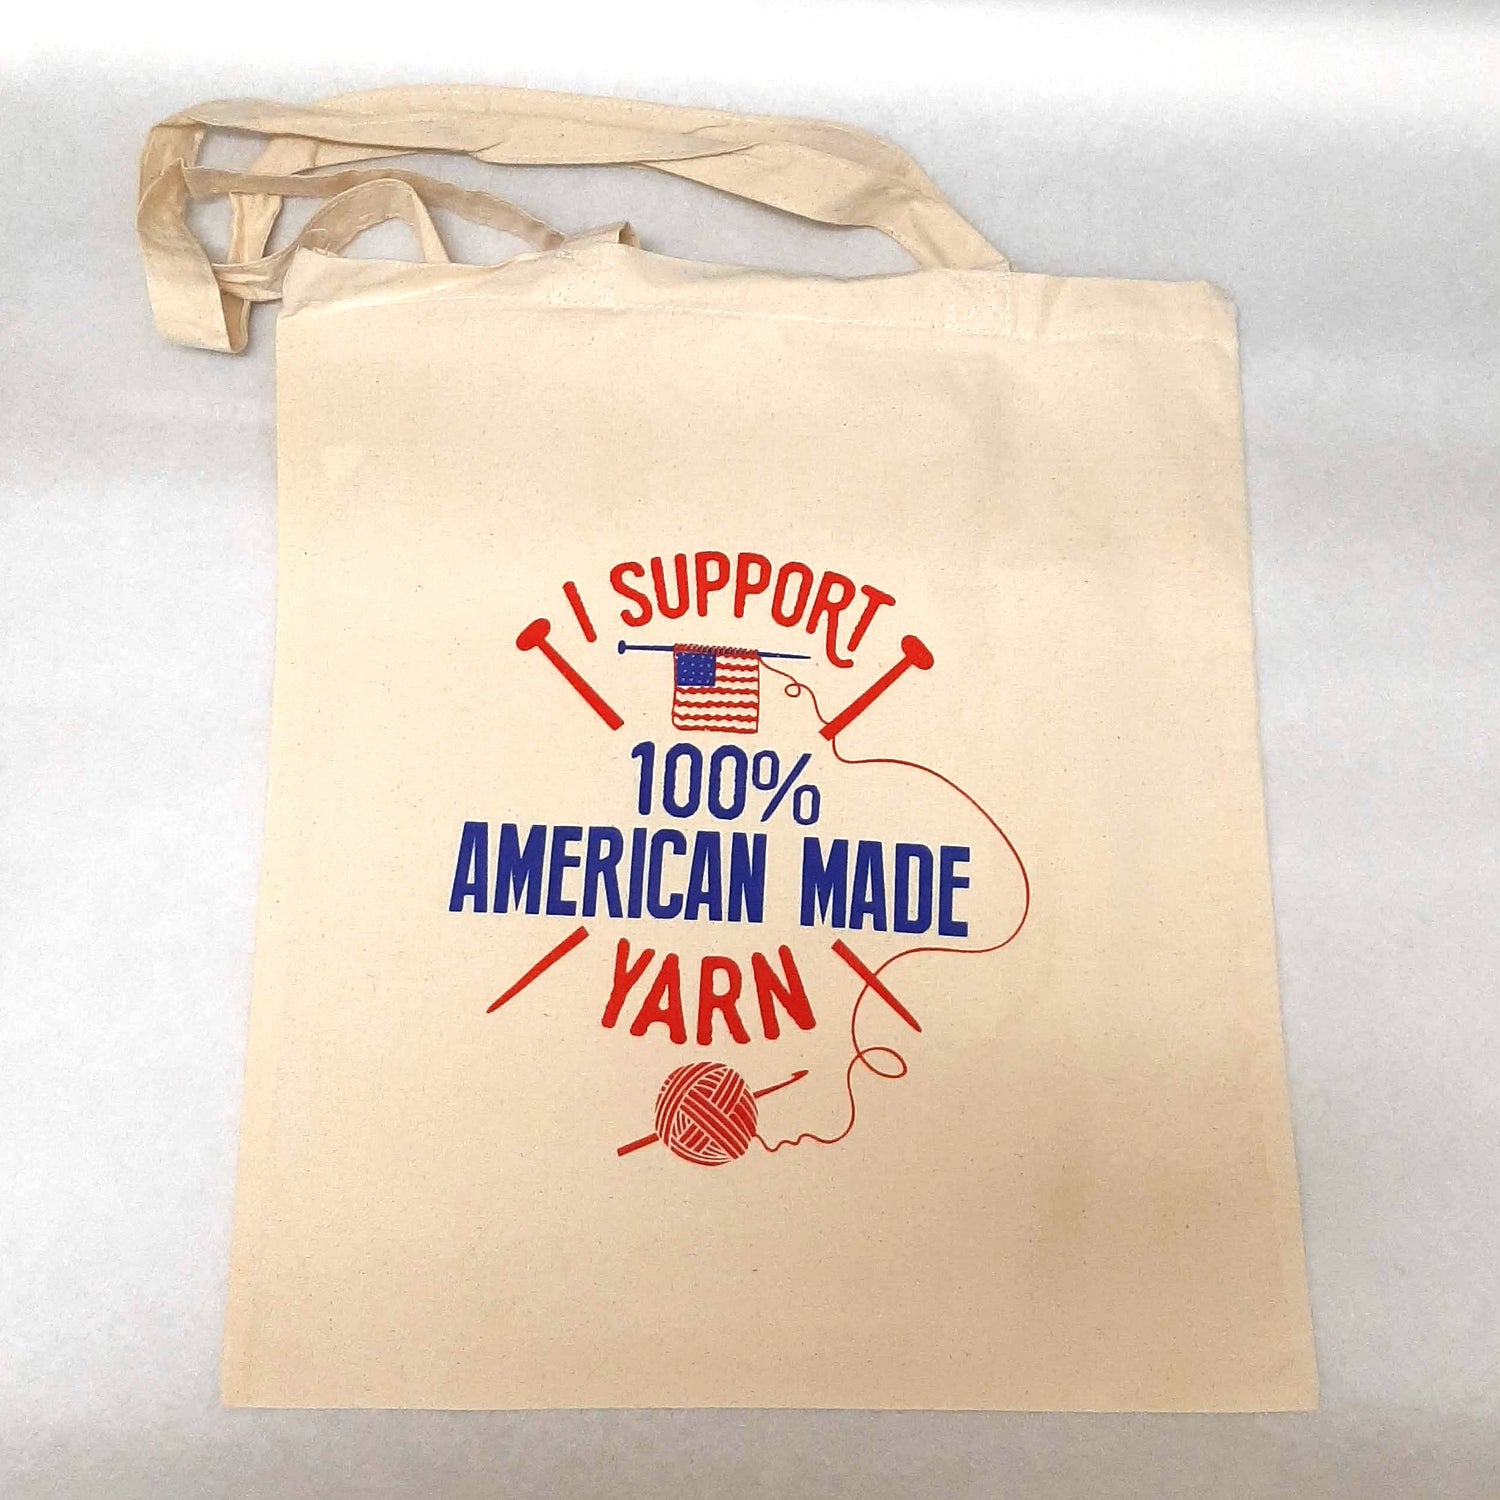 Made in the USA tote